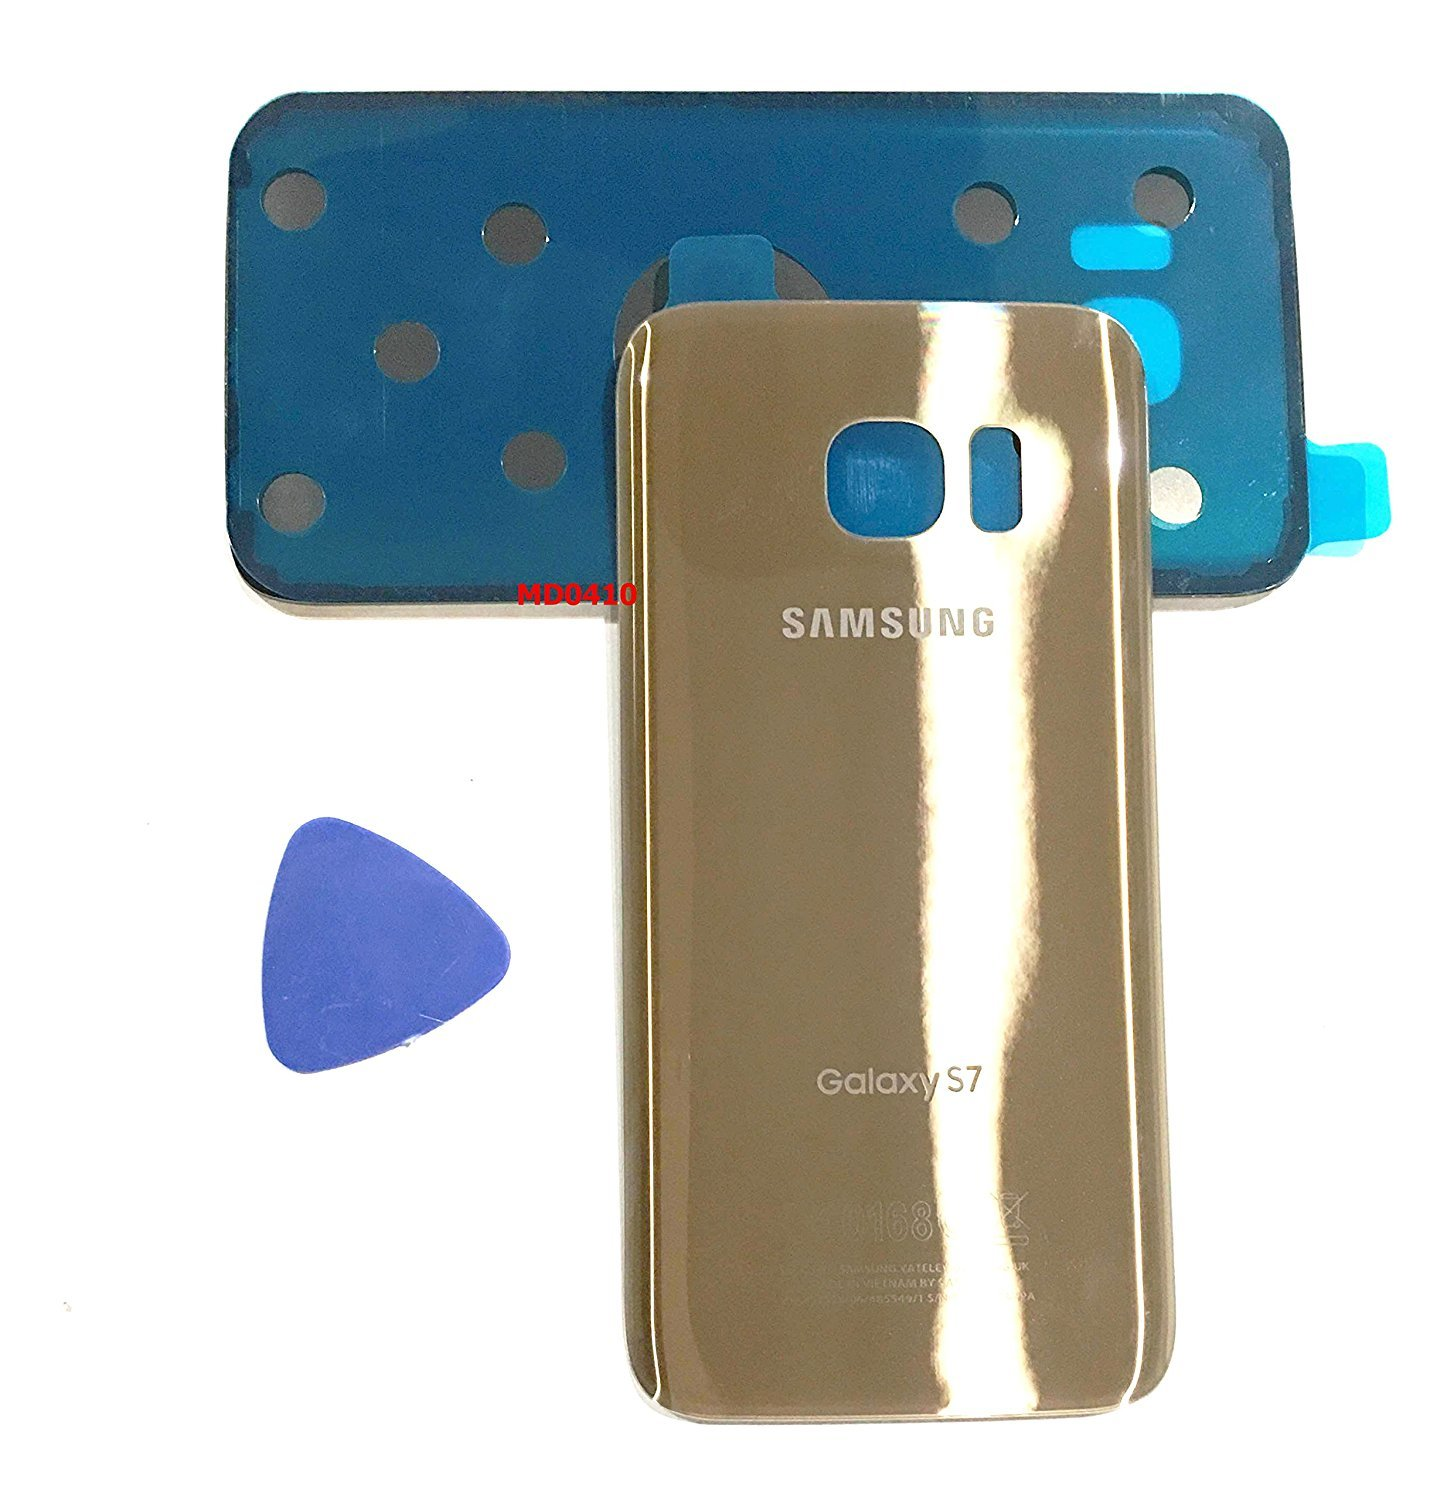 (md0410) Galaxy S7 OEM Gold Rear Back Glass Lens Battery Door Housing Cover + Adhesive Replacement For G930 G930F G930A G930V G930P G930T with adhesive and opening tool 4326974908